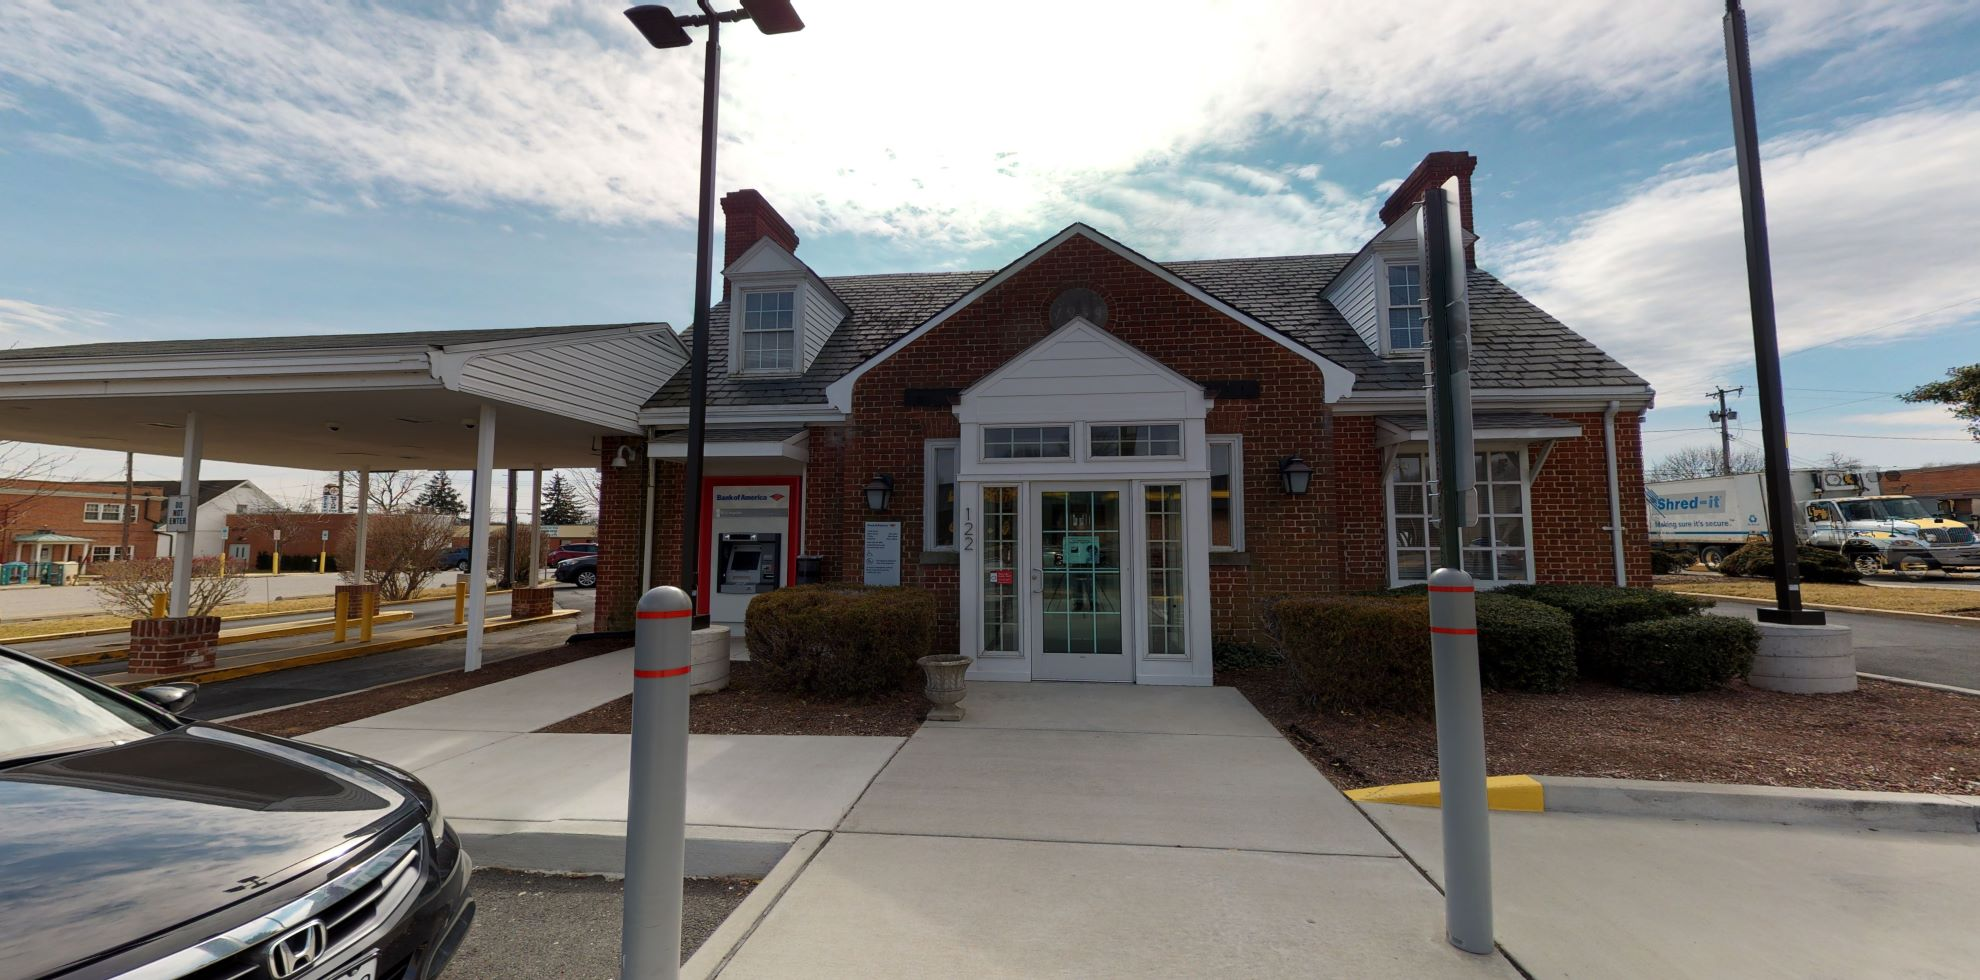 Bank of America financial center with drive-thru ATM | 122 W Bel Air Ave, Aberdeen, MD 21001